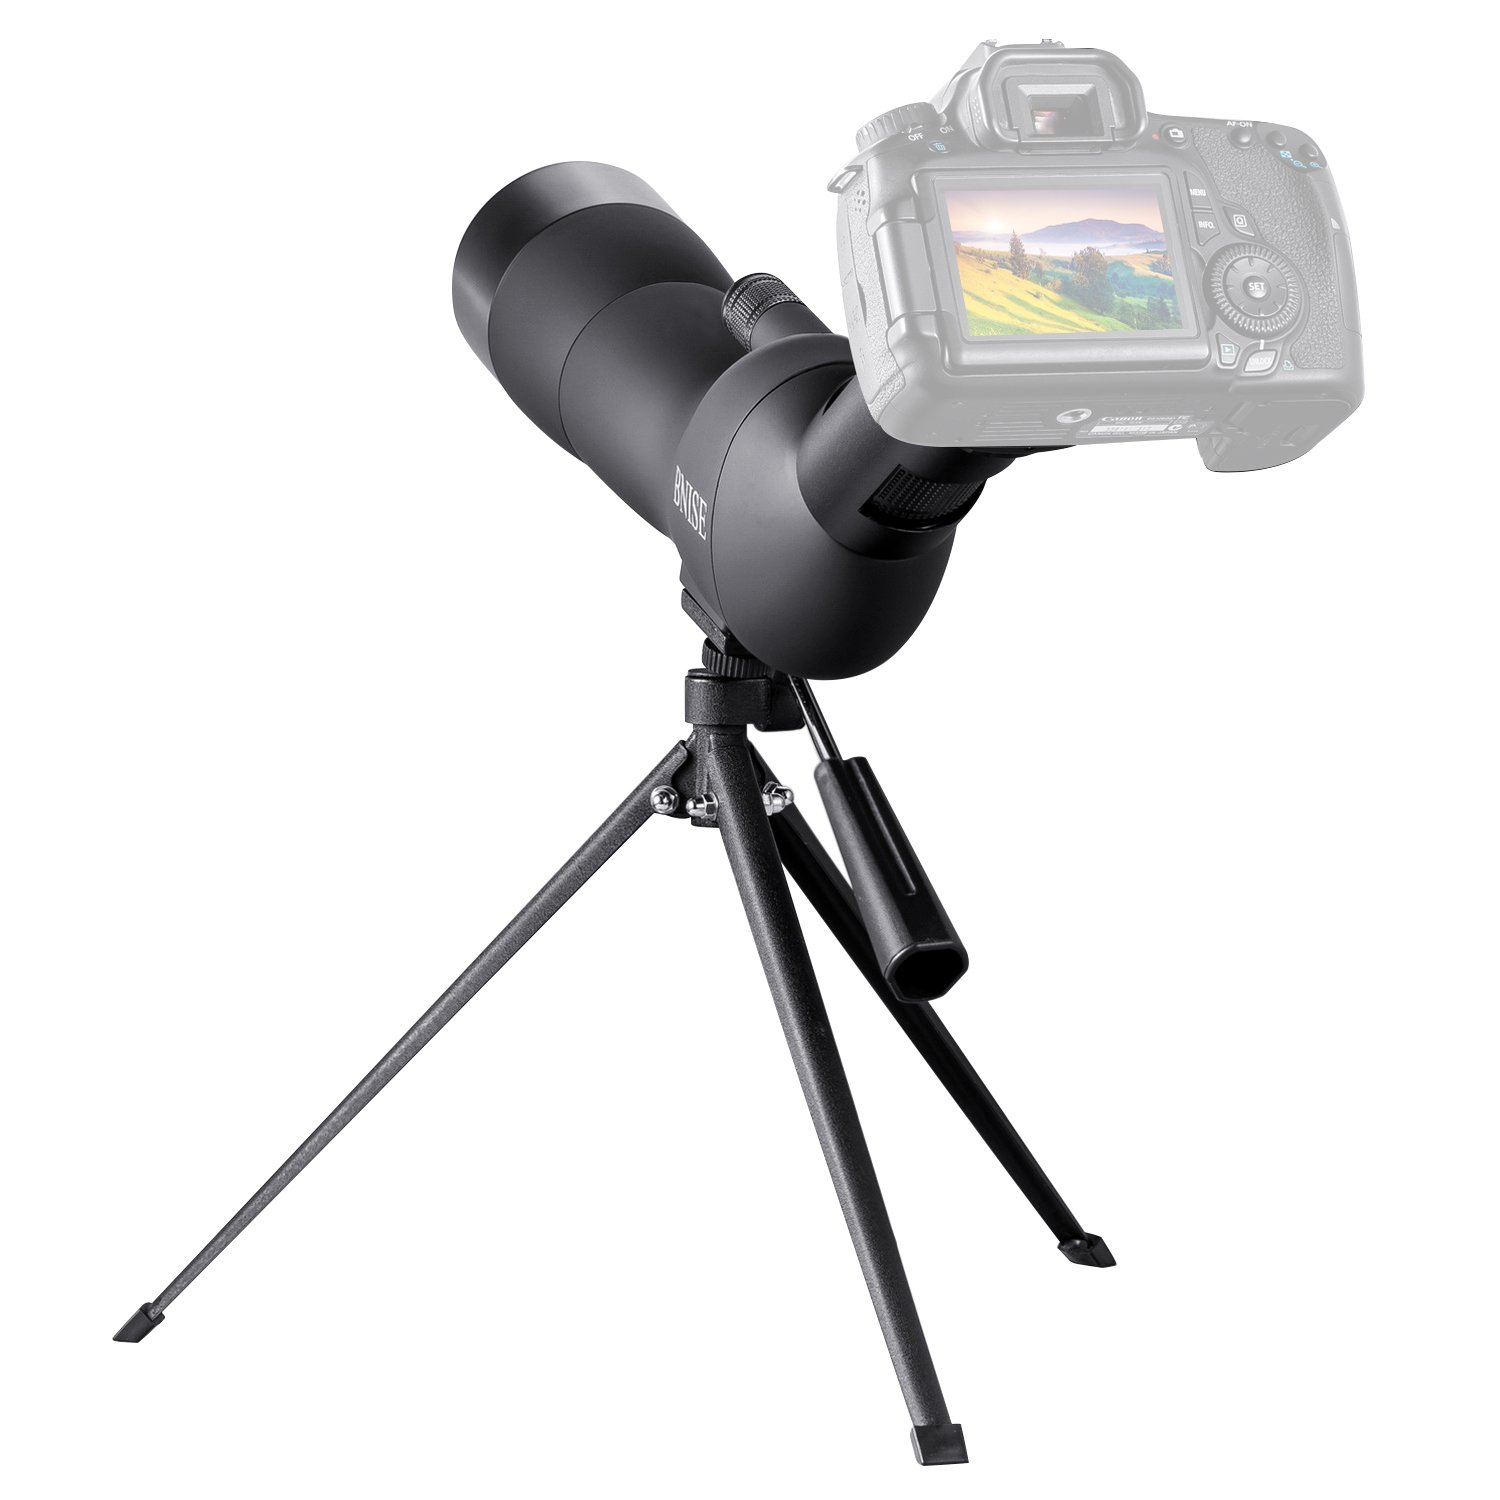 BNISE Spotting Scope for Bird Watching,60mm-wide objective Telescope, 20-60 Times Amplification, a Tripod and Photography Accessories, Suitable for Bird-watching, Hunting and Aiming, Black